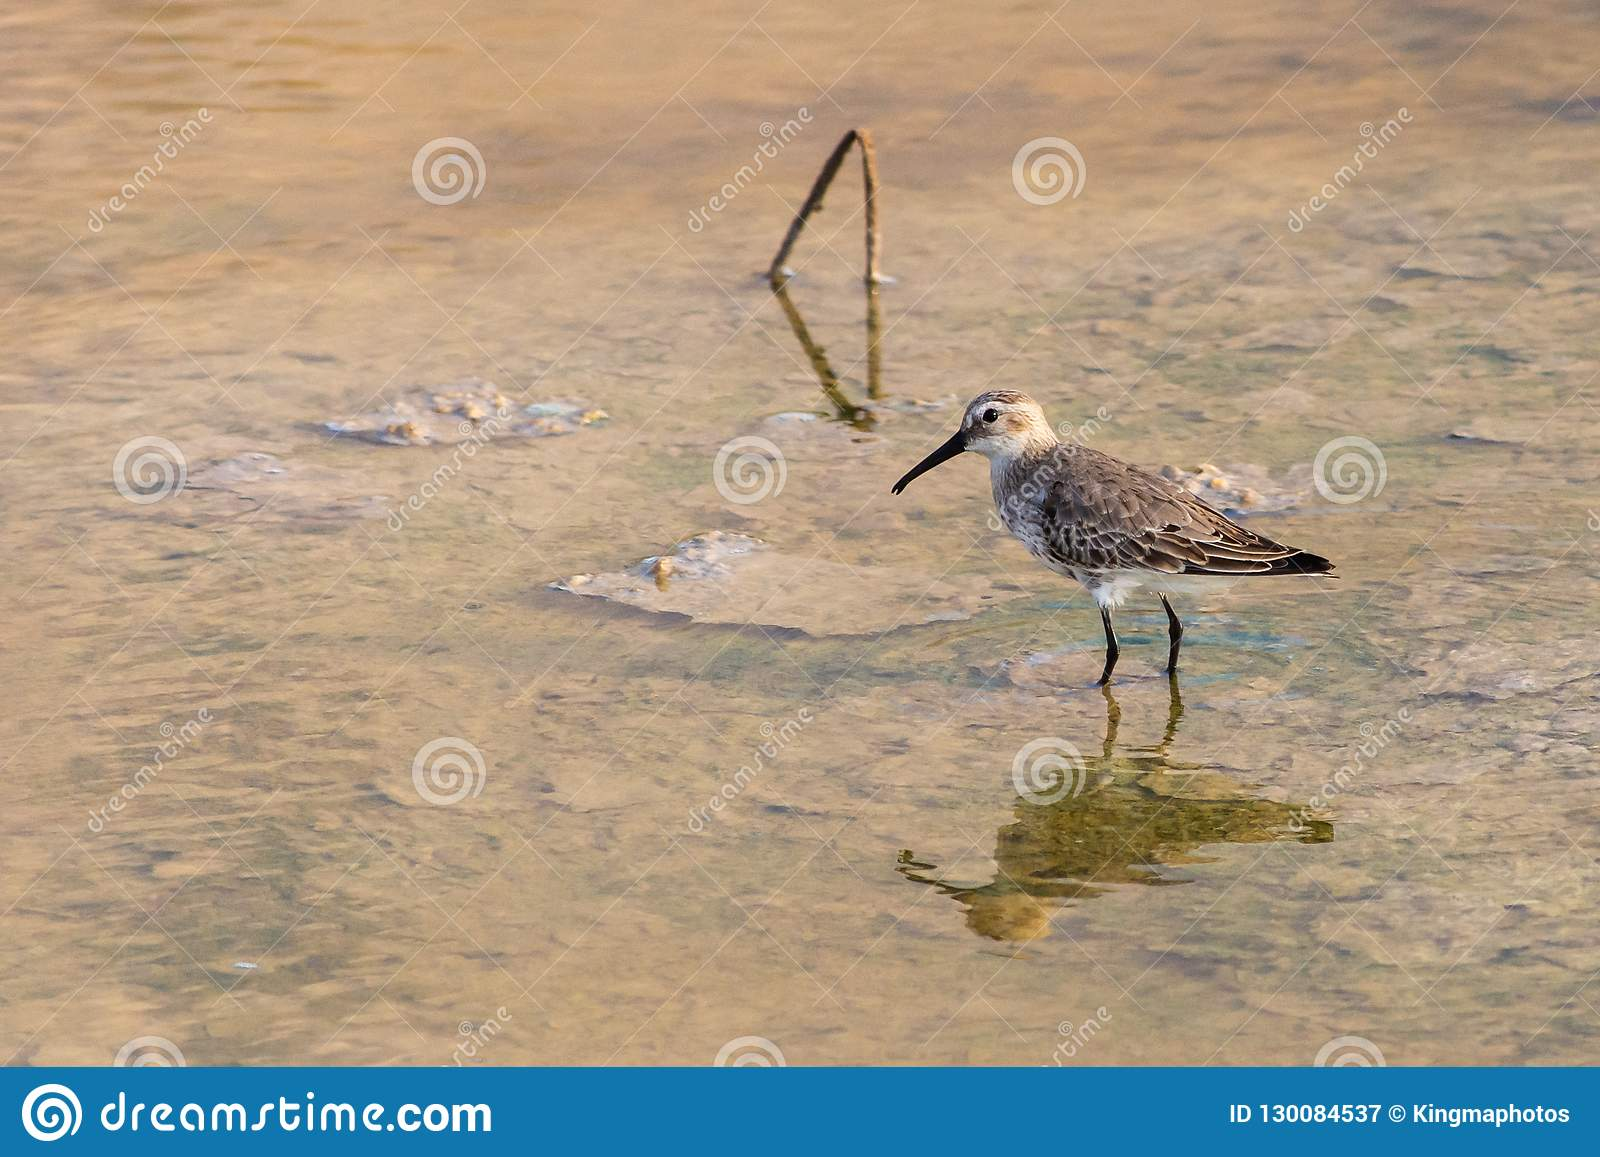 A Dunlin hunting in the shallow waters